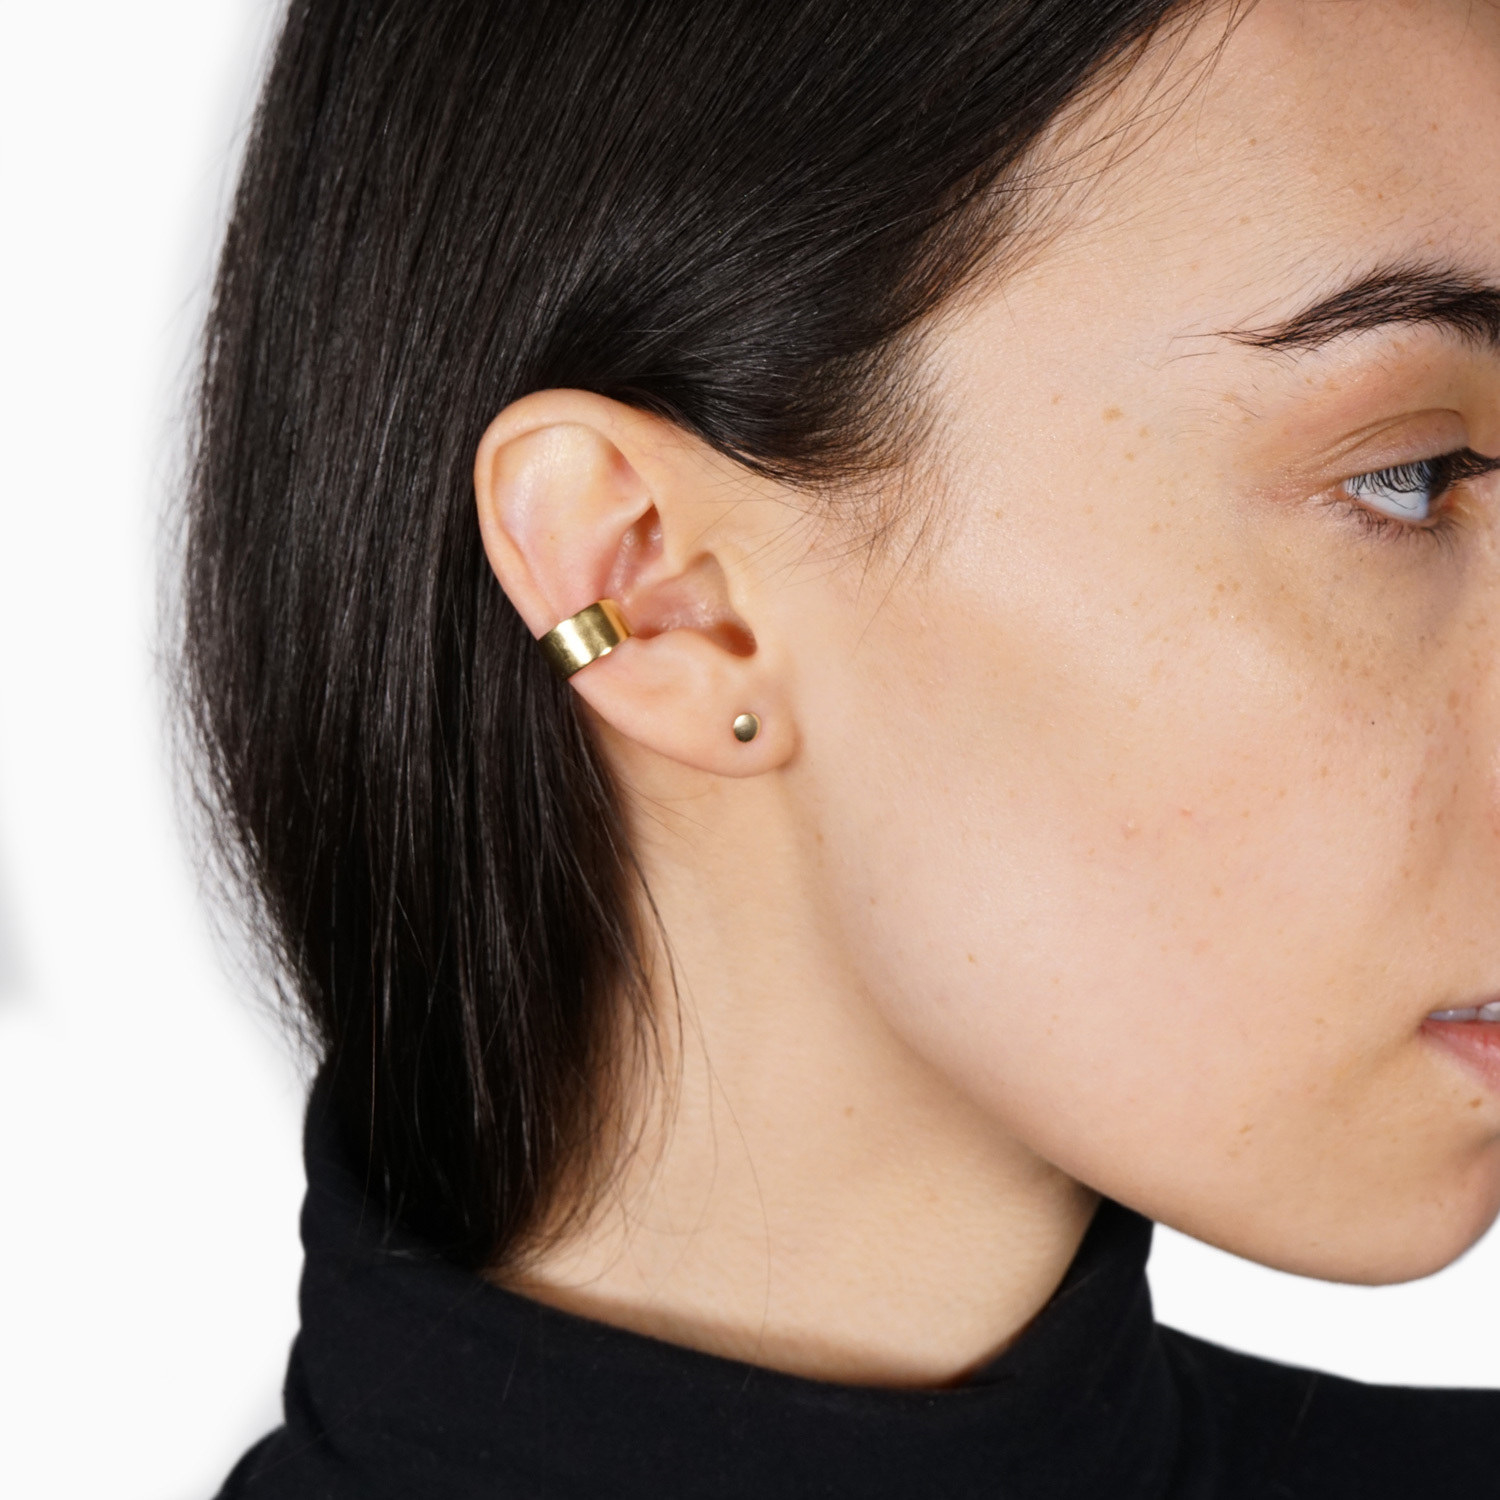 model wearing earring cuff